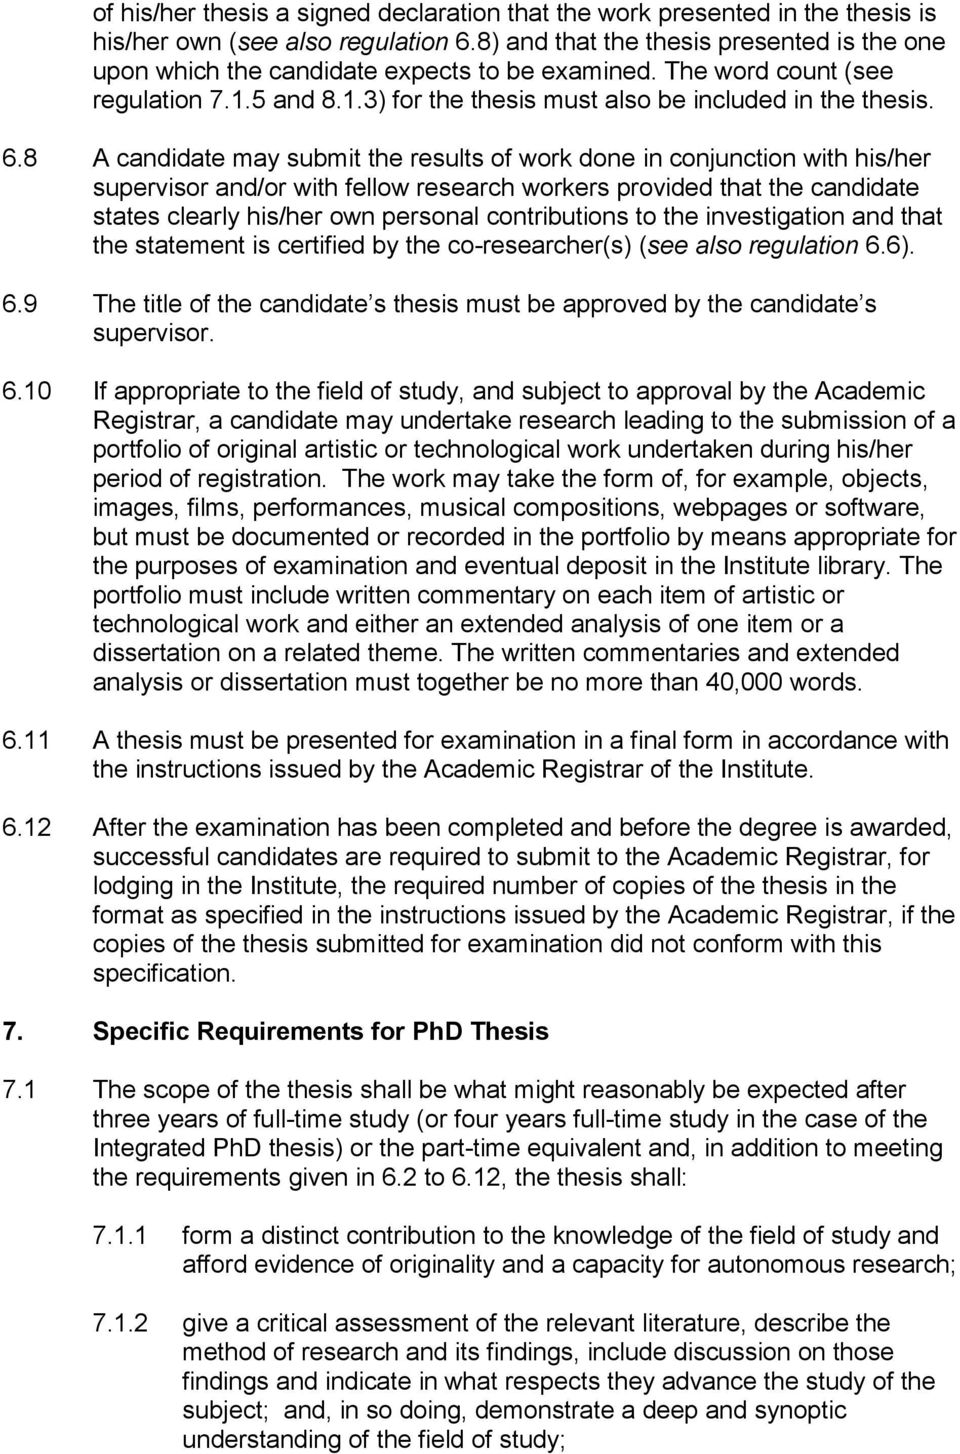 8 A candidate may submit the results of work done in conjunction with his/her supervisor and/or with fellow research workers provided that the candidate states clearly his/her own personal